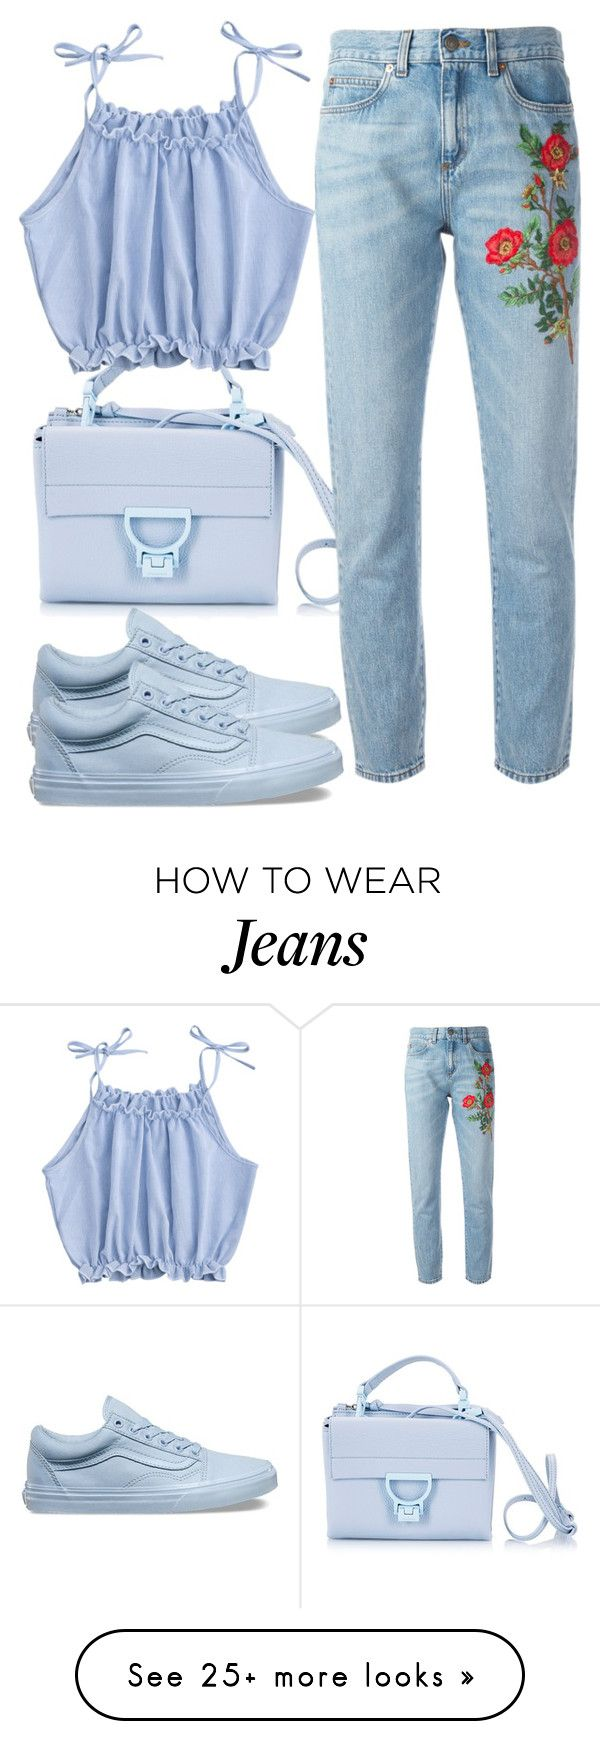 """My fav jeans"" by britishcandies on Polyvore featuring Coccinelle, Vans and Gucci"